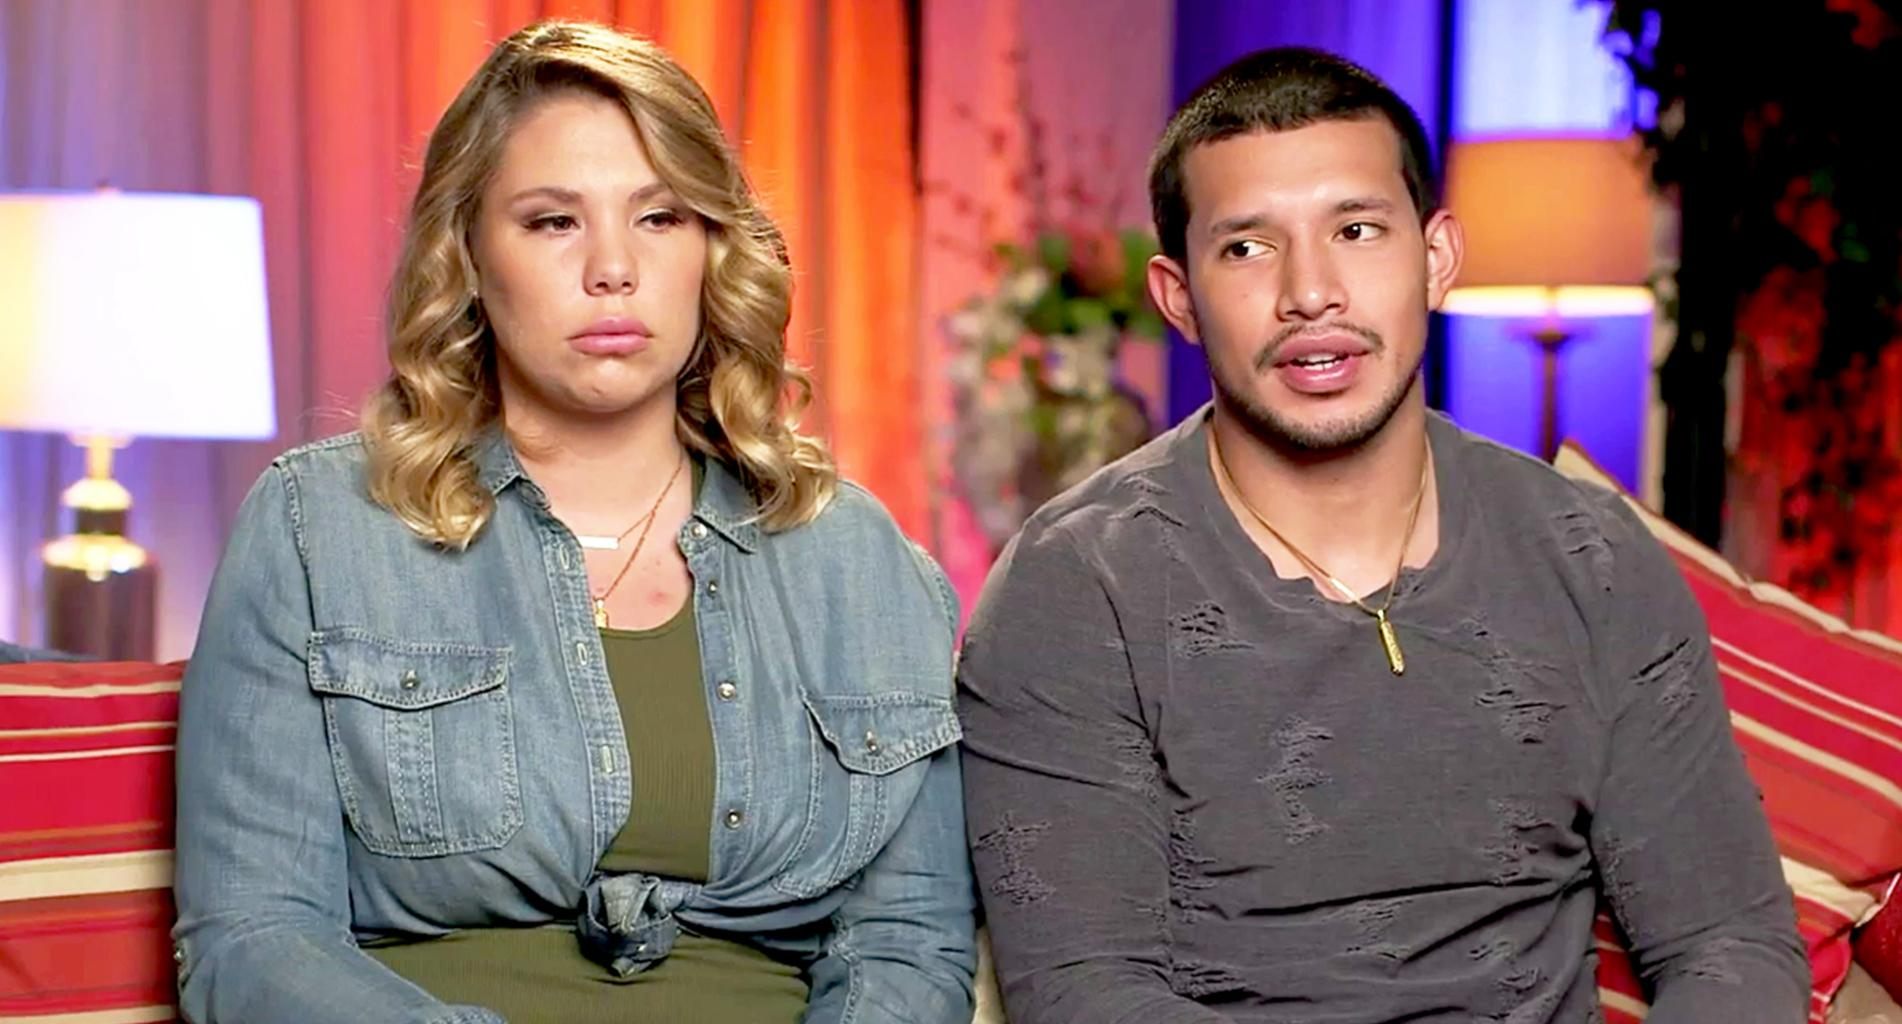 Kailyn Lowry Explains Why Her Marriage With Javi Did Not Work Out - Hints She Regrets Their Split!